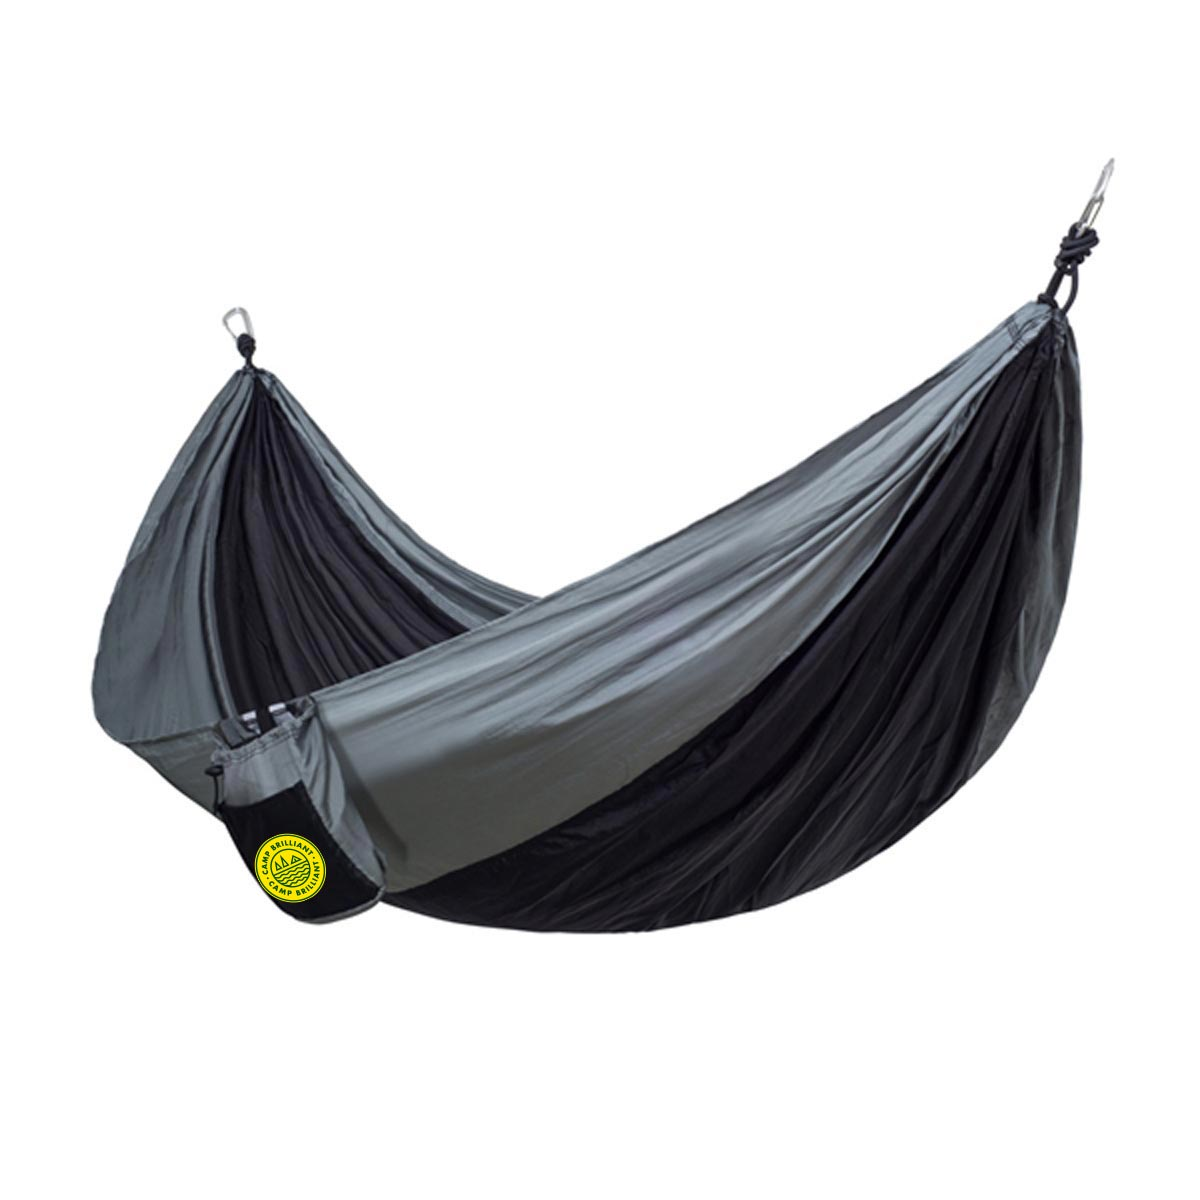 229569 nester packable hammock two color one location imprint